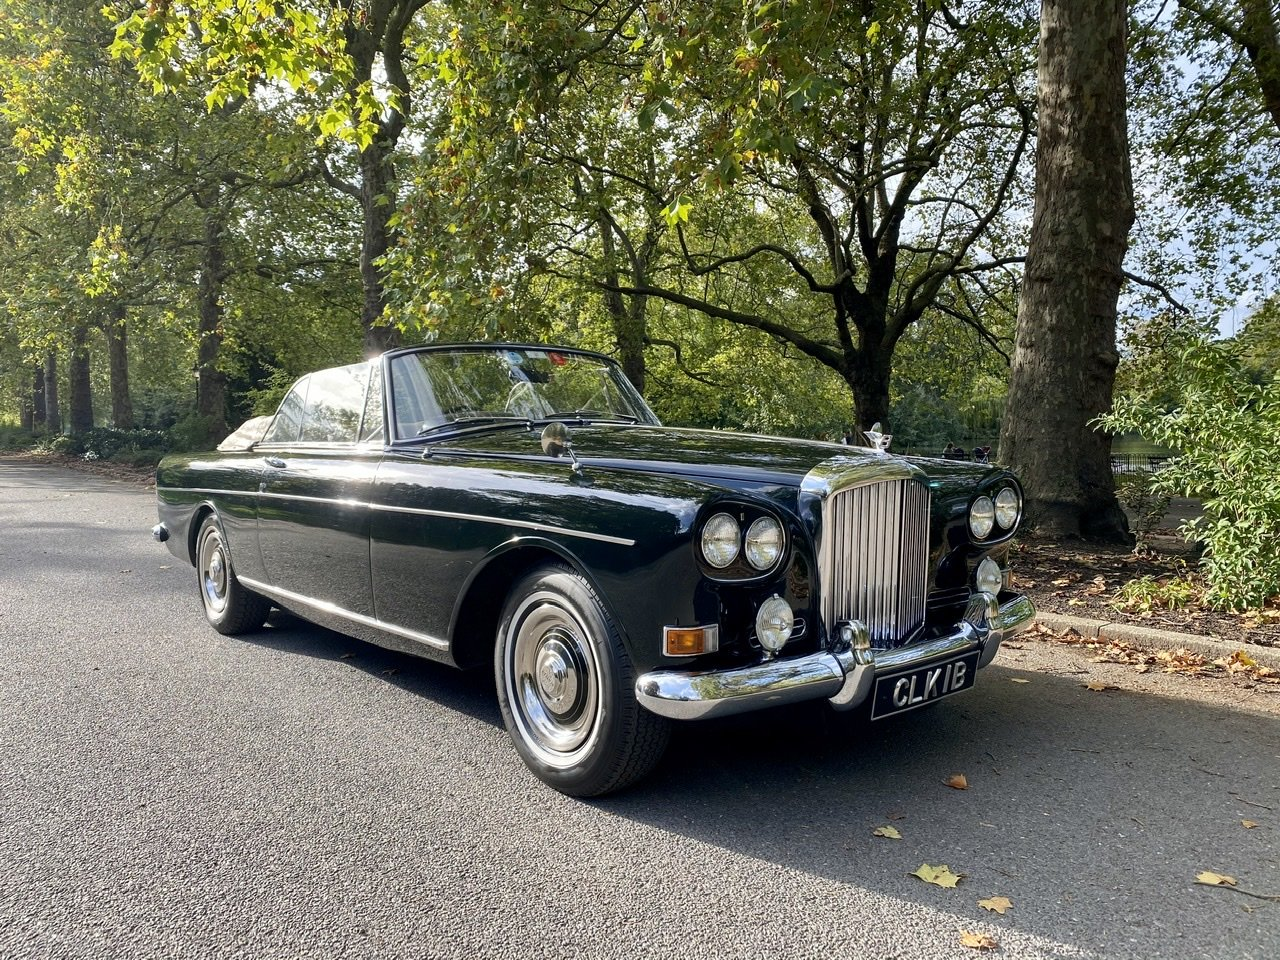 1964 Bentley S3 Continental Drop Head Coupe For Sale (picture 2 of 24)